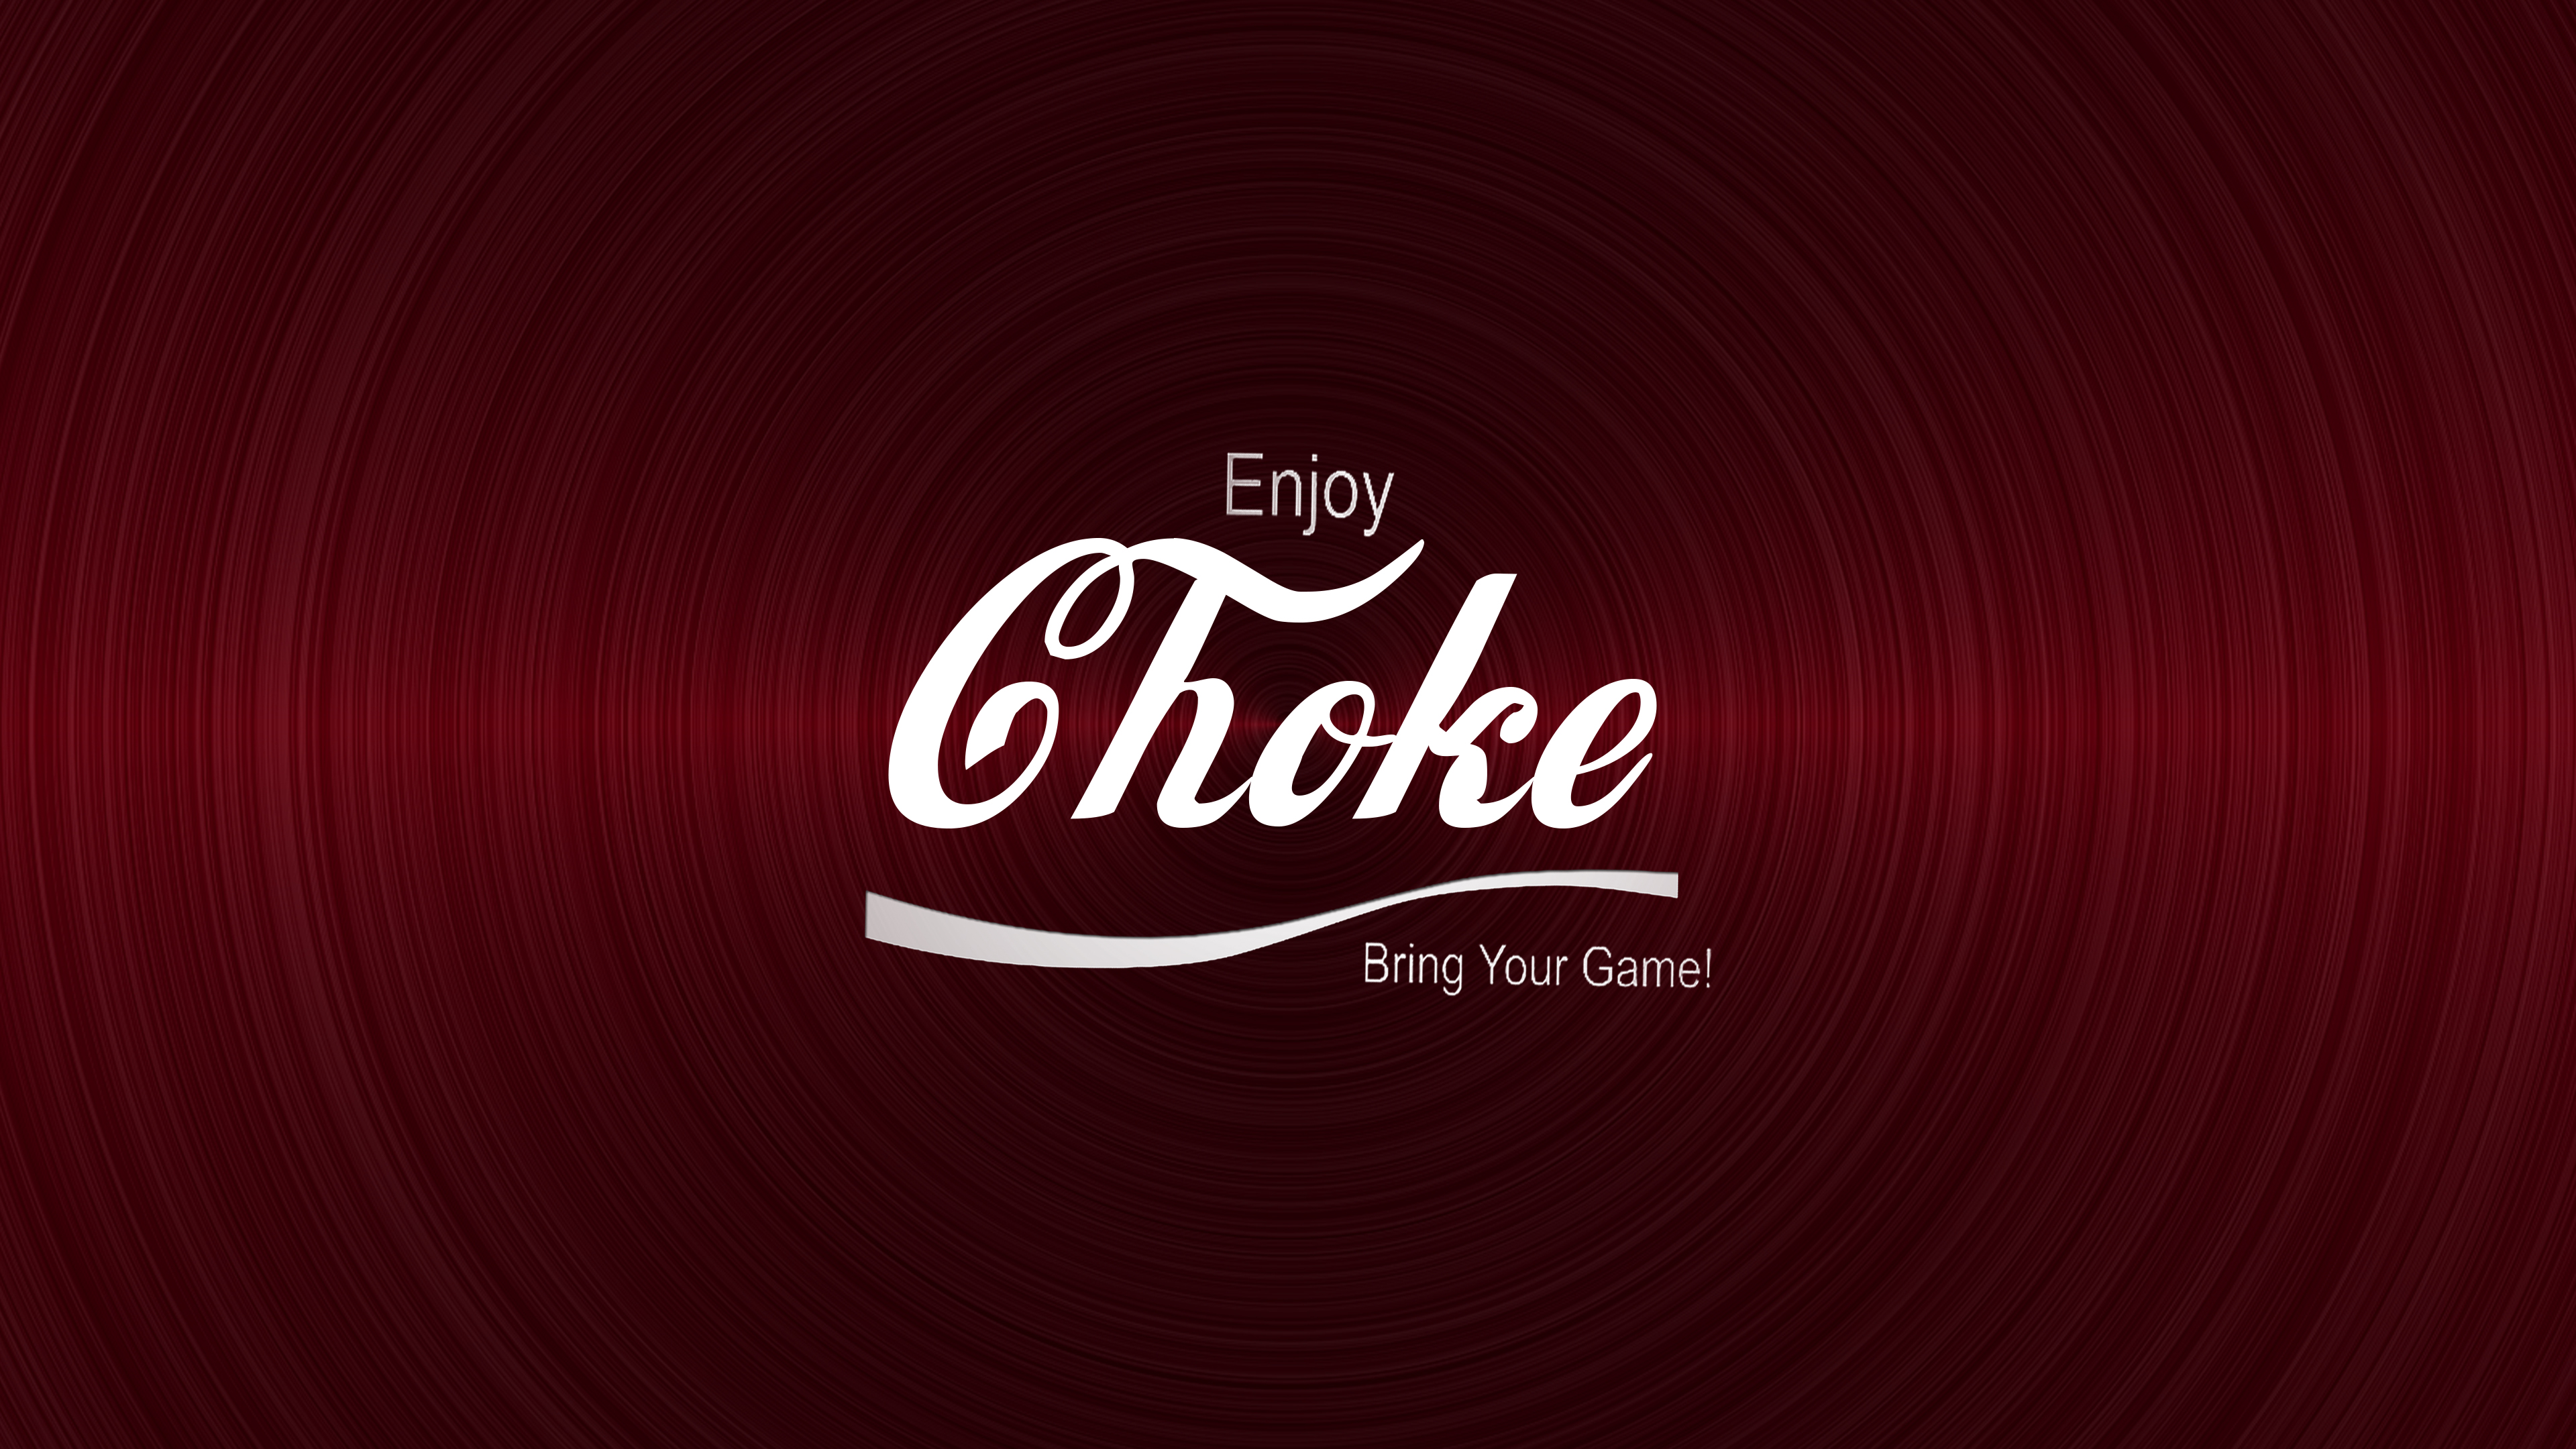 Jiu Jitsu Enjoy Choke Red Brushed Metal Background